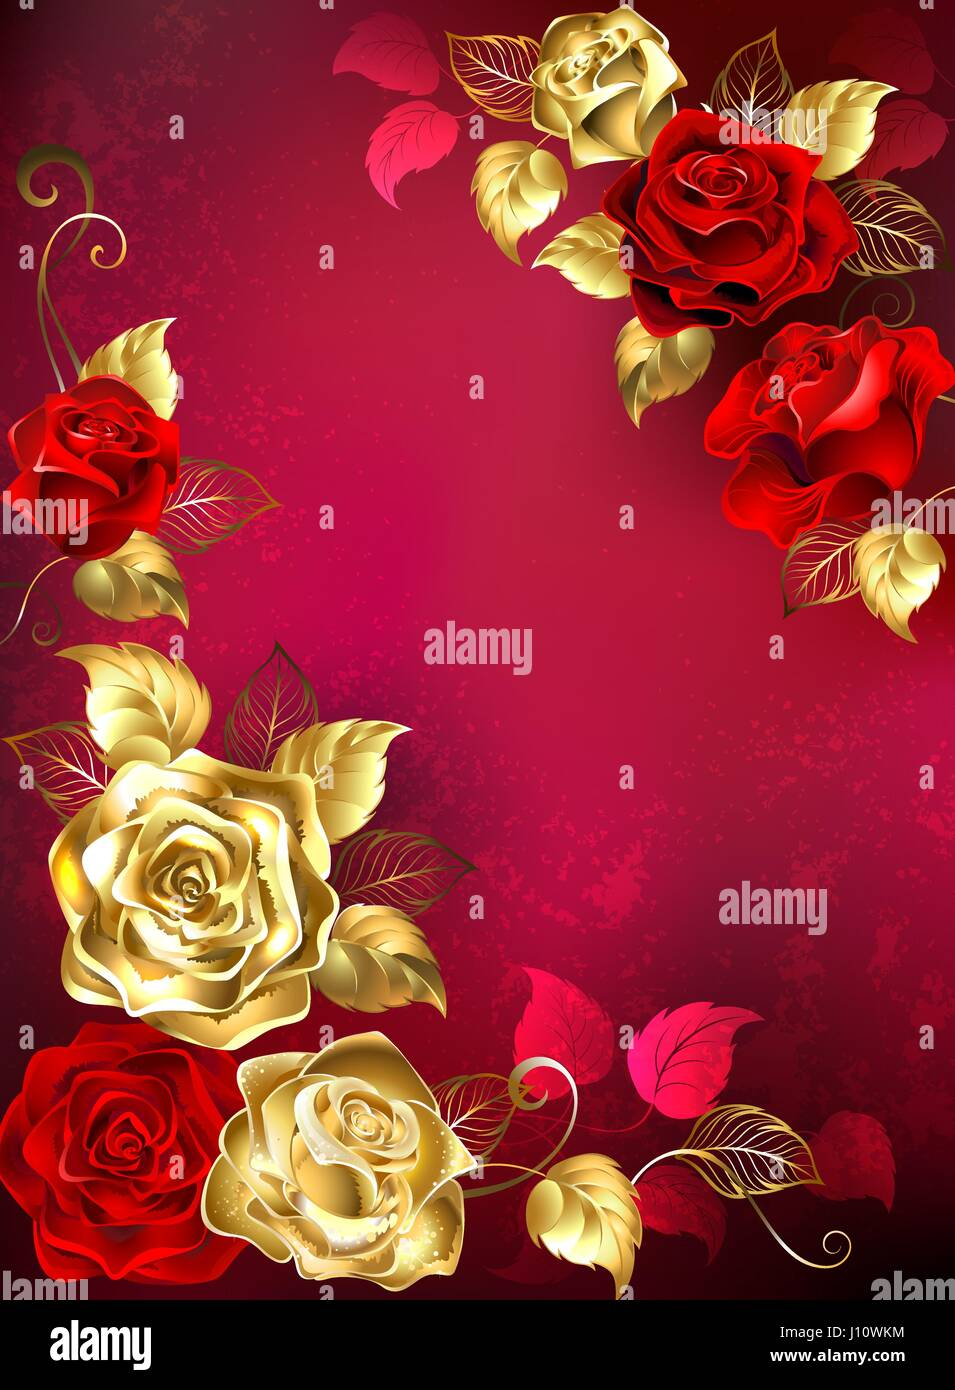 Greeting card with red and gold jewelry roses with gold leafs on a